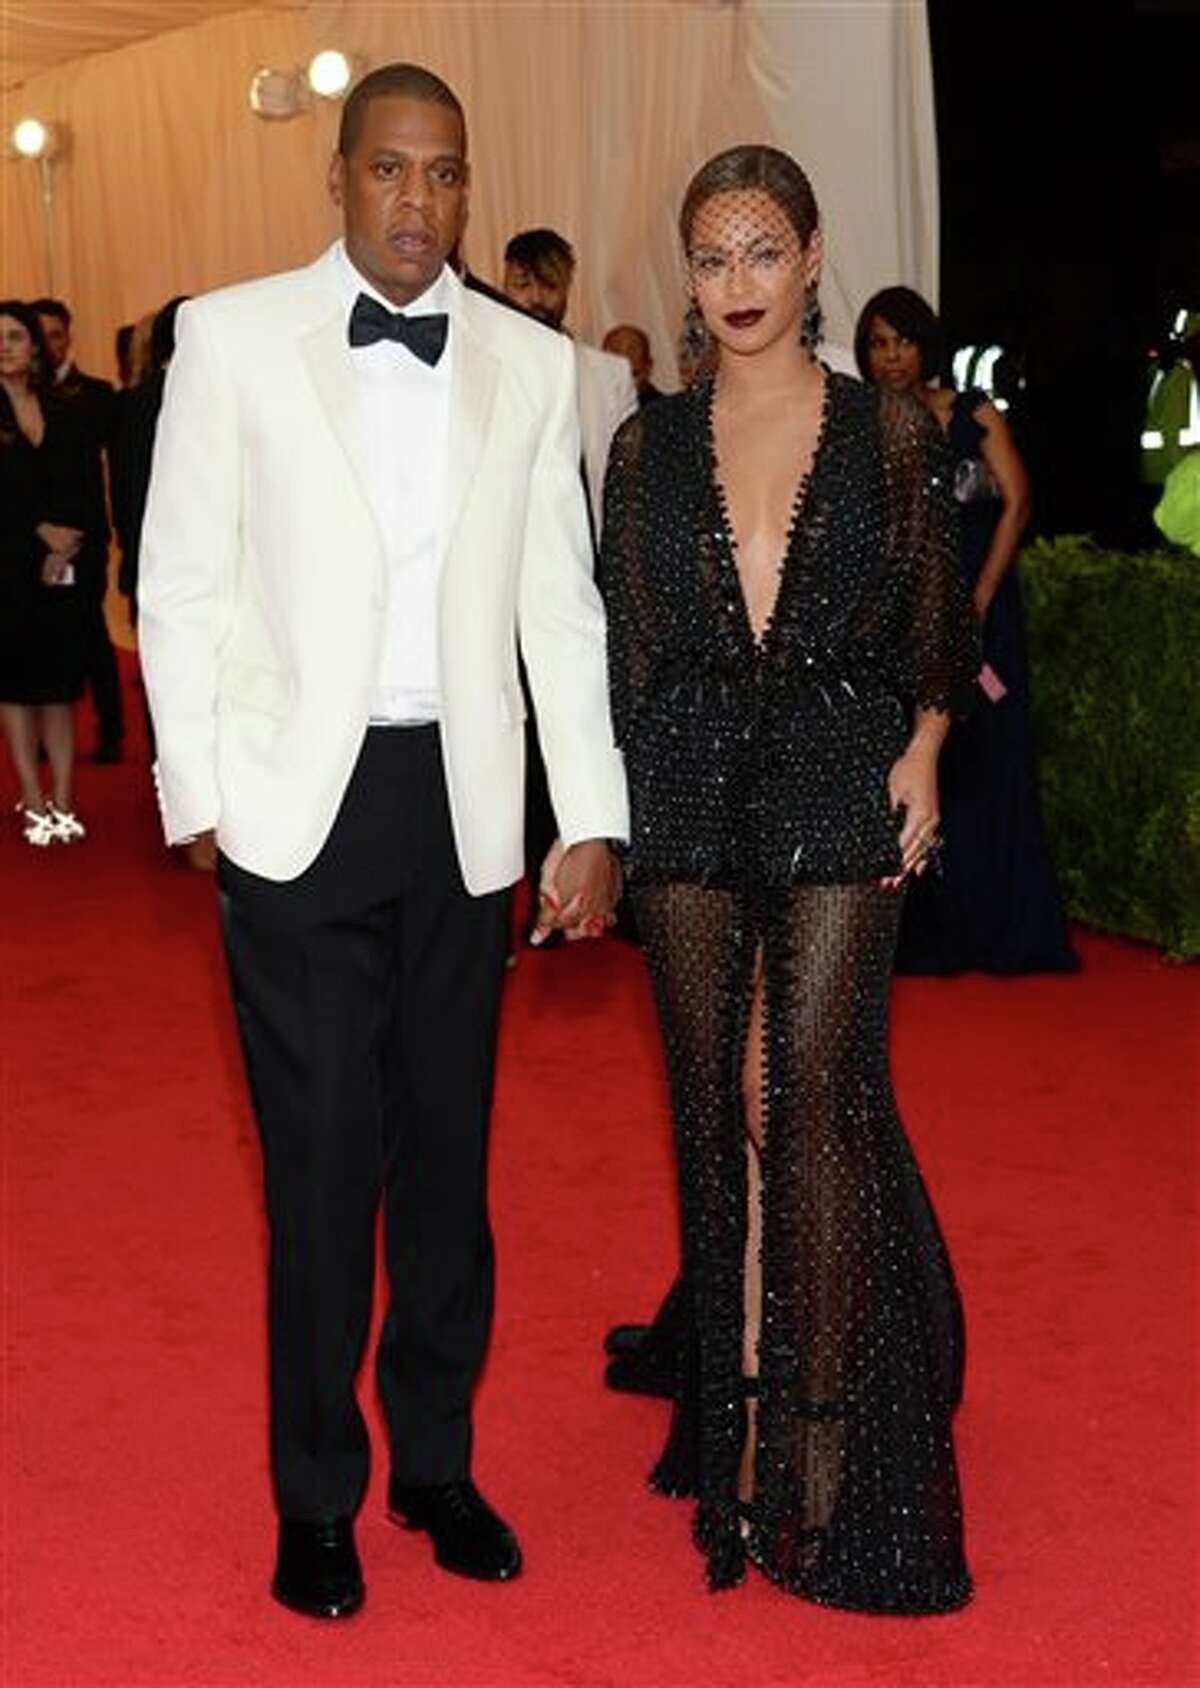 """FILE - This May 5, 2014 file photo shows Jay Z, left, and Beyonce at The Metropolitan Museum of Art's Costume Institute benefit gala celebrating """"Charles James: Beyond Fashion"""" in New York. Beyonce, Jay Z and Solange say they have worked through and are moving on since a video leaked this week of Solange attacking Jay Z in an elevator inside the Standard Hotel after the May 5, gala. (Photo by Evan Agostini/Invision/AP, File)"""